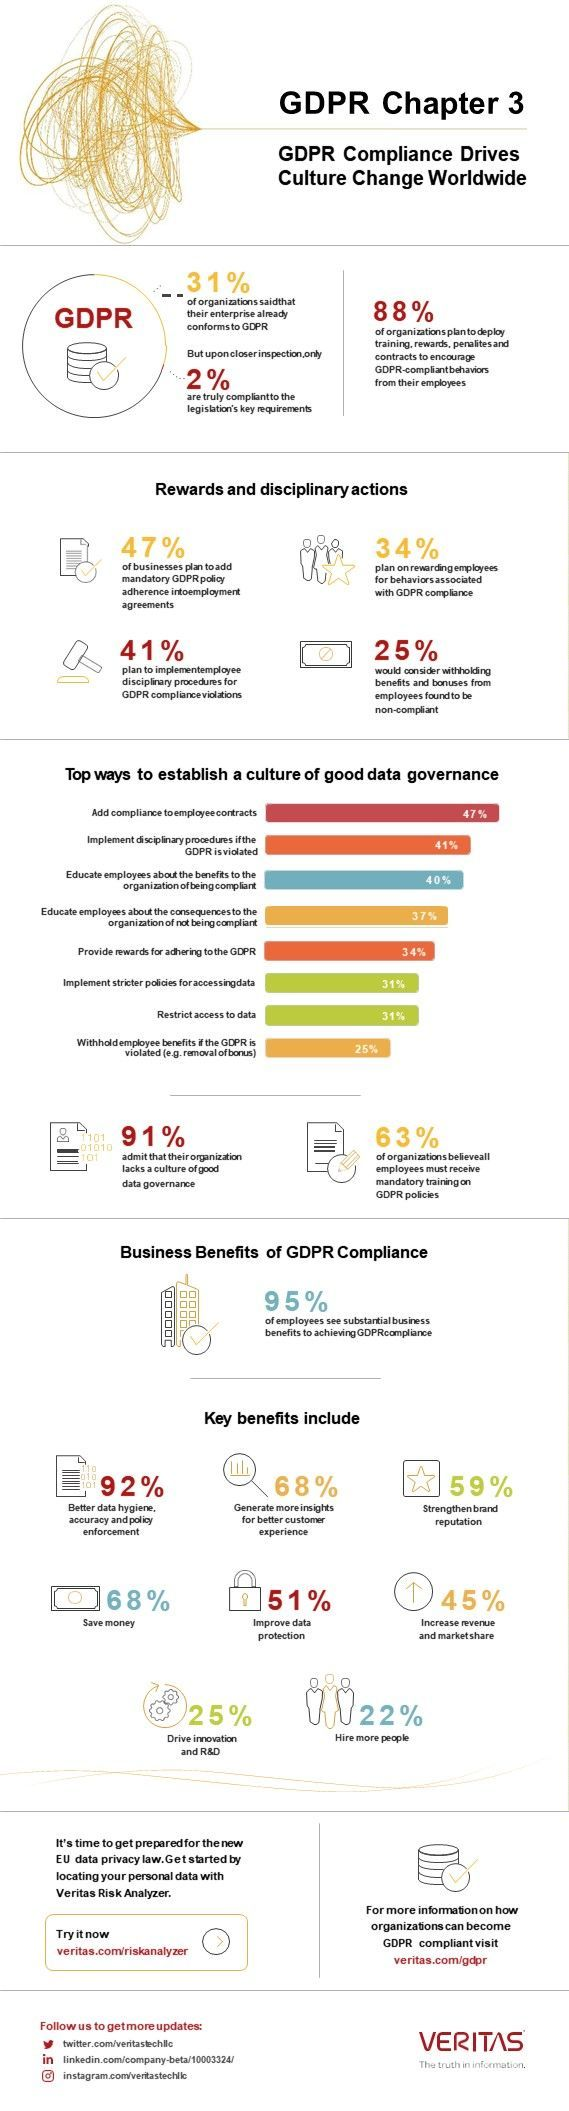 Gdpr Infographic From Veritas Feel Free To Reach Out To Know More Gdpr Gdprcompliance Dataprotection Da Gdpr Compliance Business Benefits Cyber Security